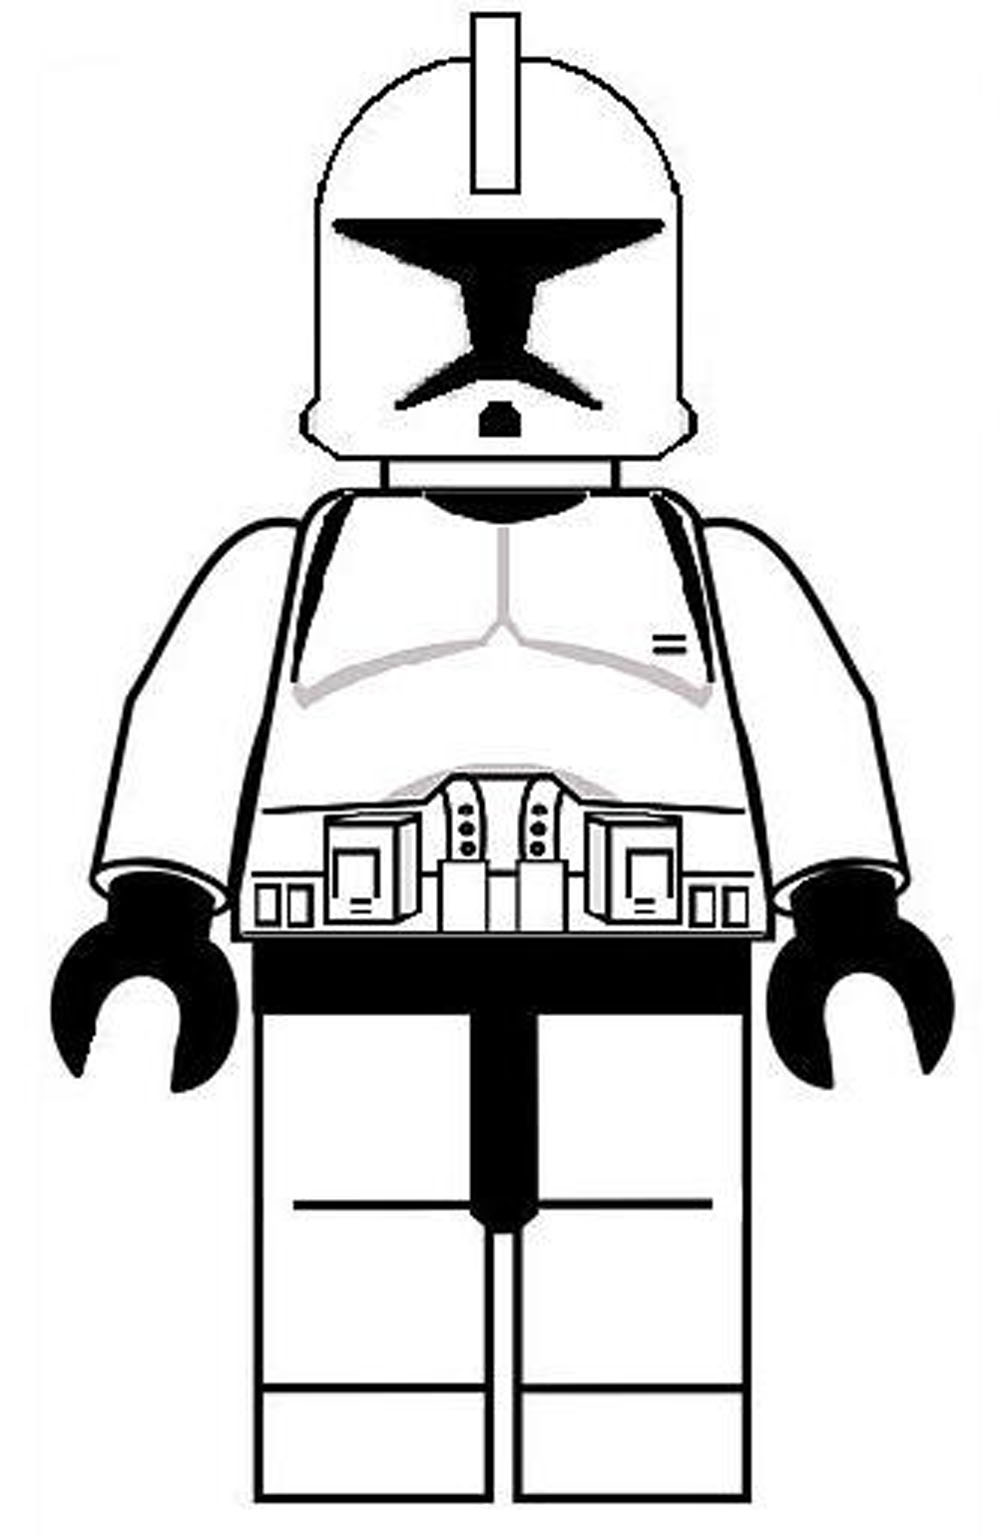 lego colouring in pictures lego batman coloring pages best coloring pages for kids lego pictures colouring in